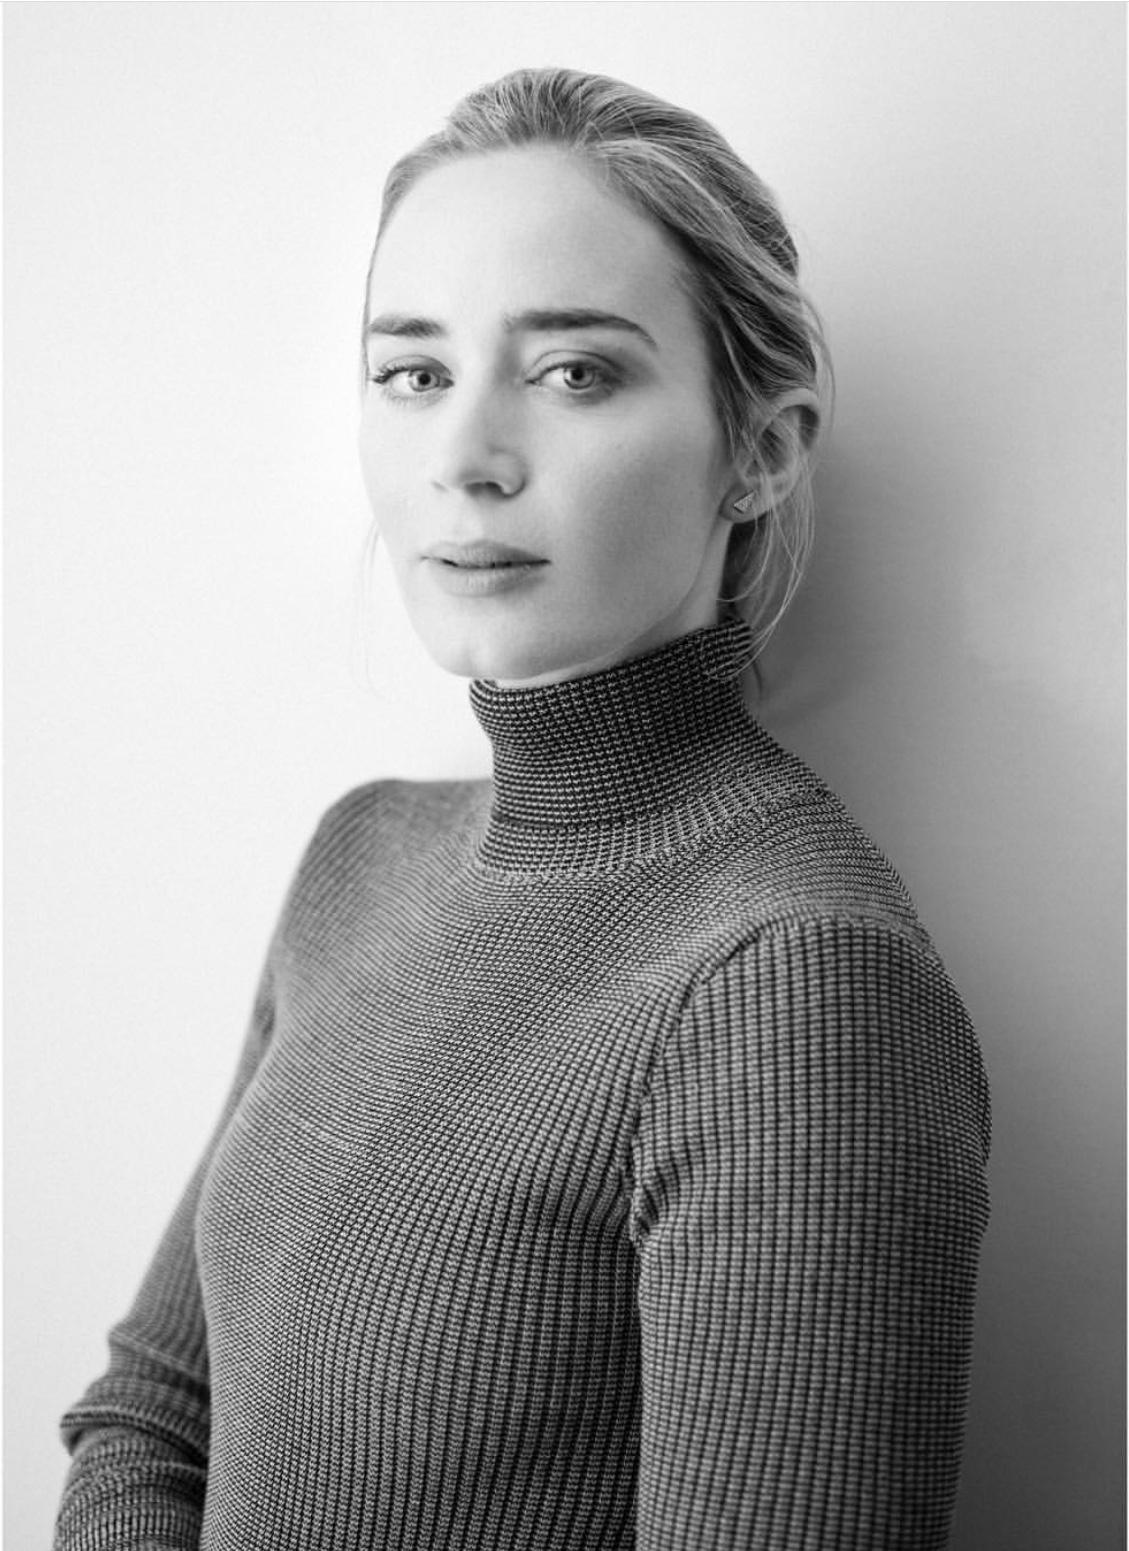 Emily Blunt for the NY Times timesTalks 2018